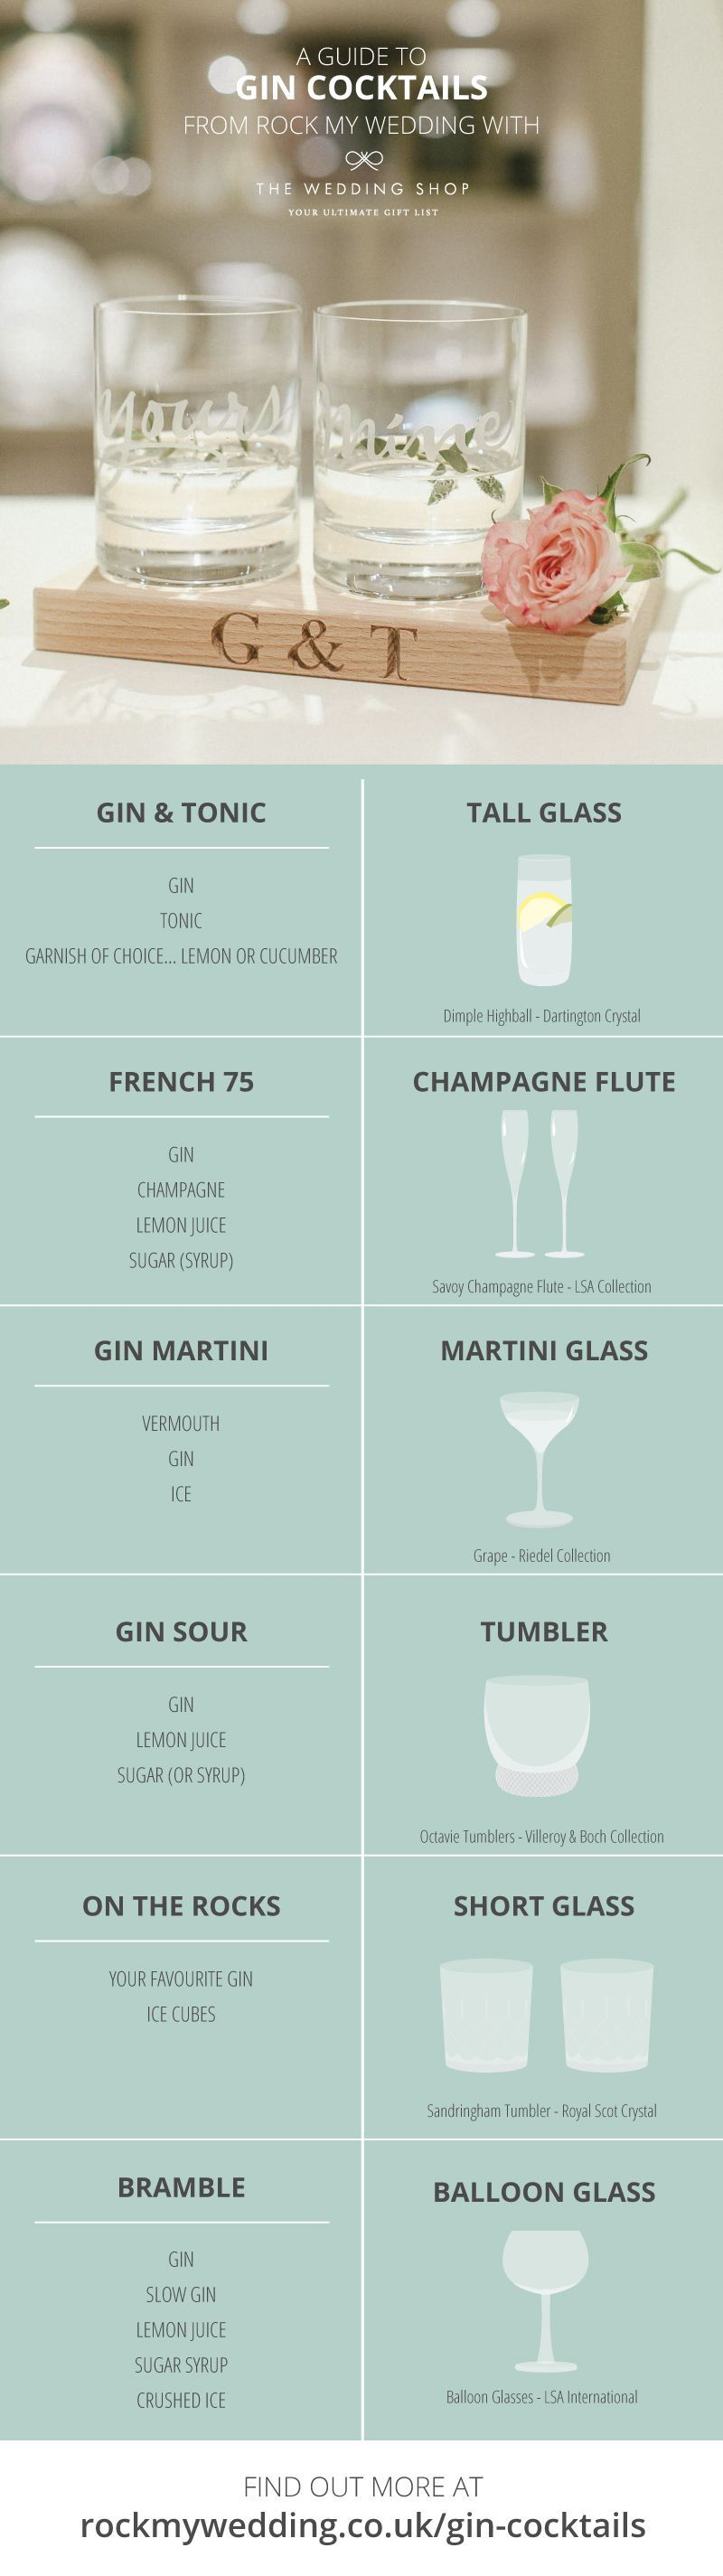 Gin Cocktail Recipes And Why Balloon Glasses Are Best For Serving Gin // The Wedding Shop Exclusive Gift List Partner To Rock My Wedding #bestgincocktails A Guide to Gin Cocktail Glassware with The Wedding Shop | #Gin #Cocktails #Glassware #Tonic #gandt #gift #list #registry #presents #entertaining #balloon #glass #tumbler #champagne #flute #shot #glasses #bestgincocktails